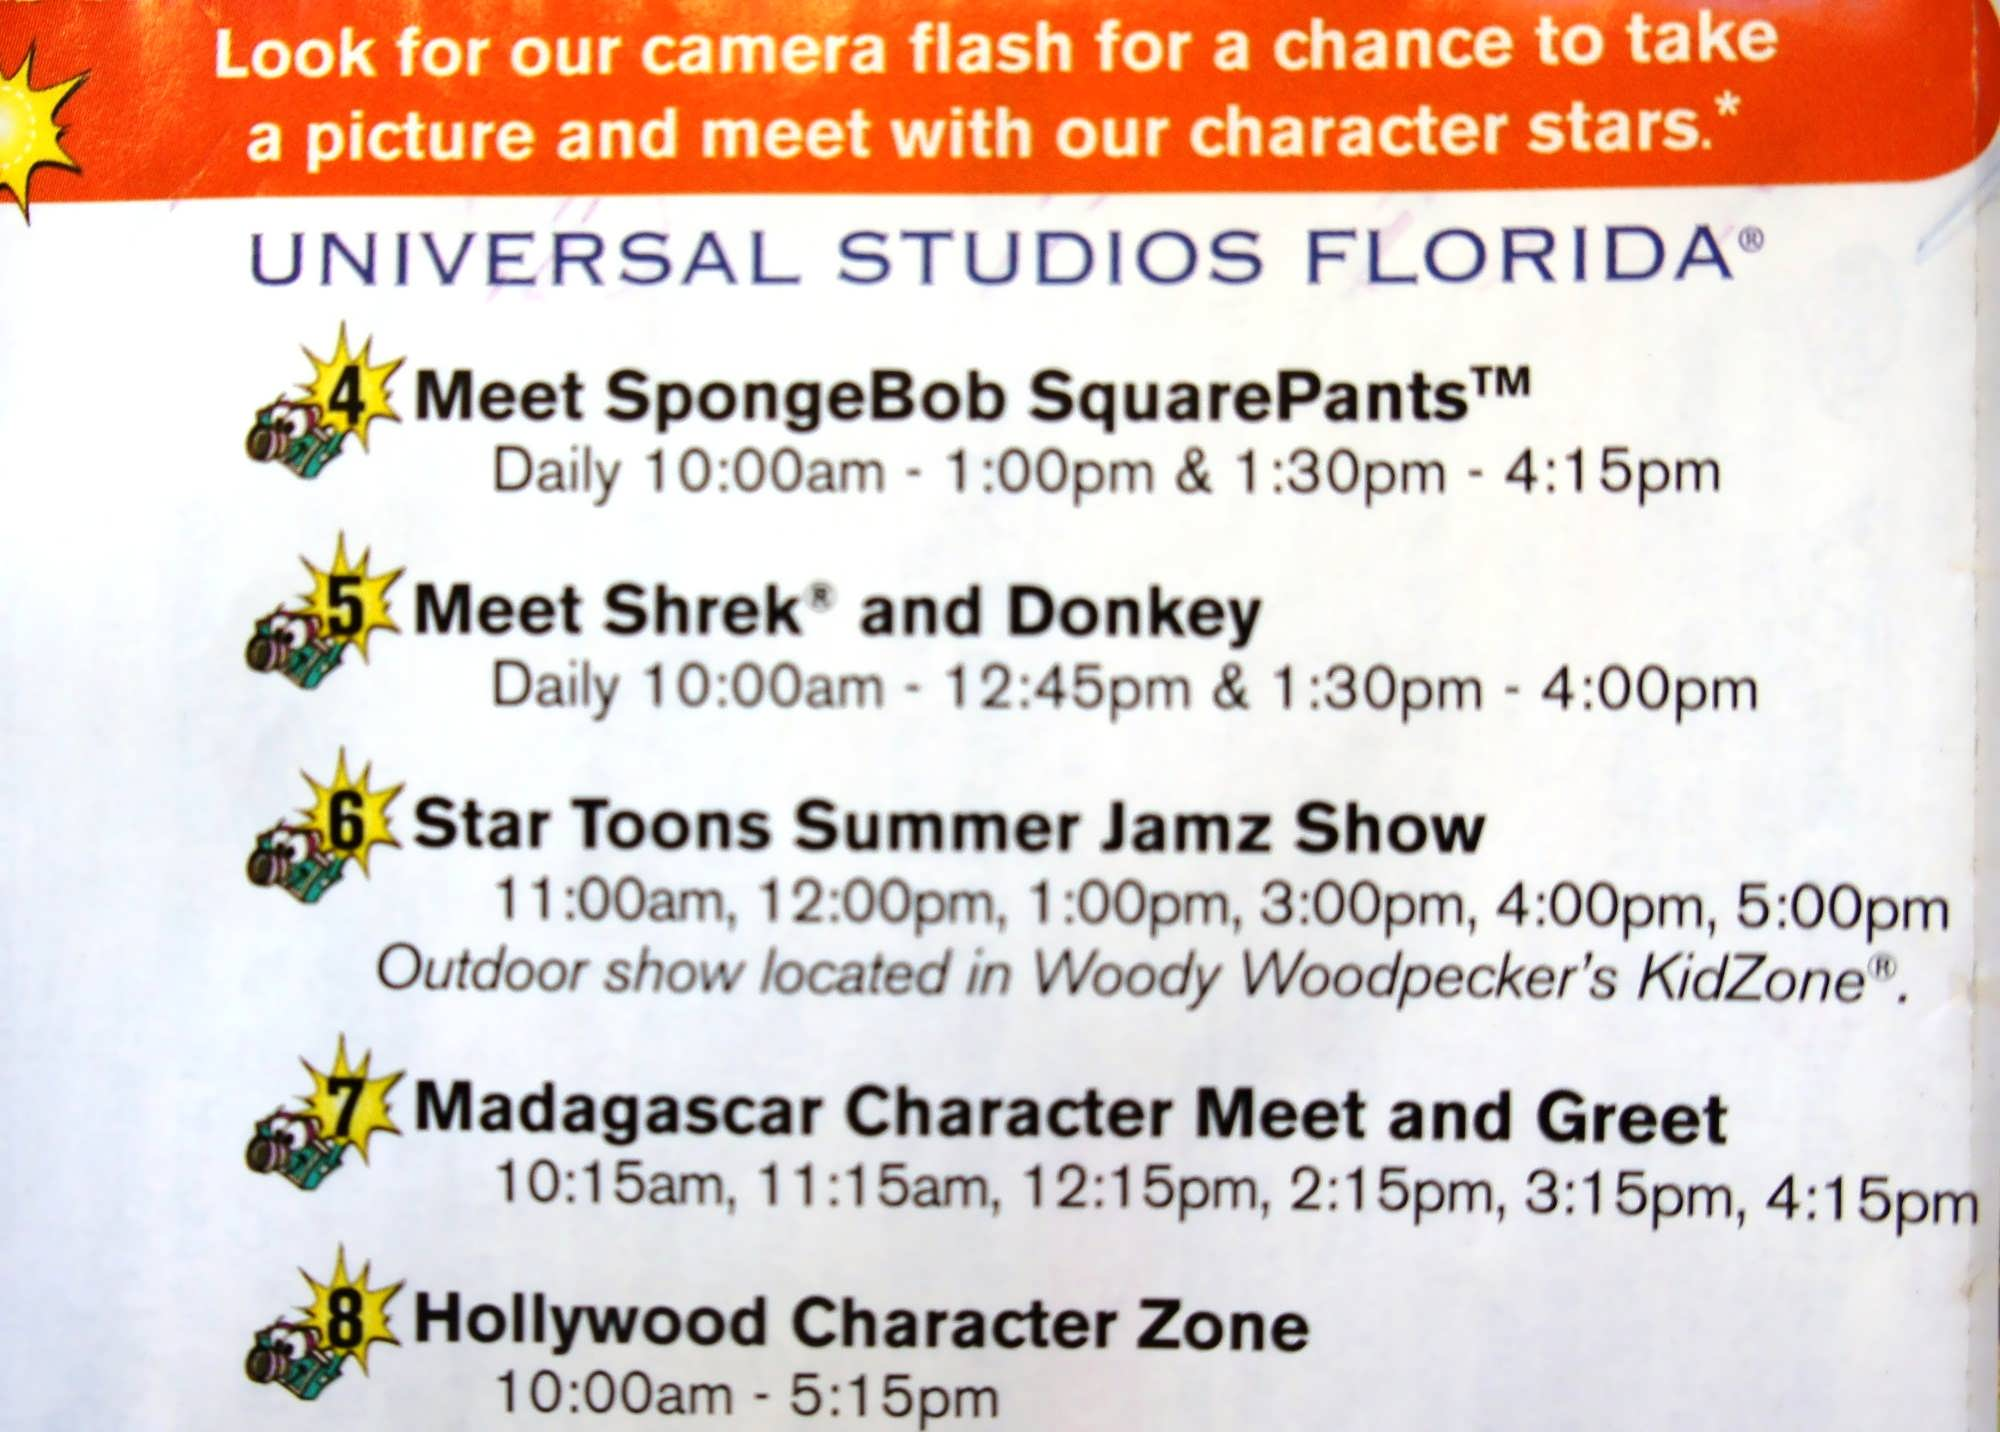 Character sample schedule at Universal Studios Florida